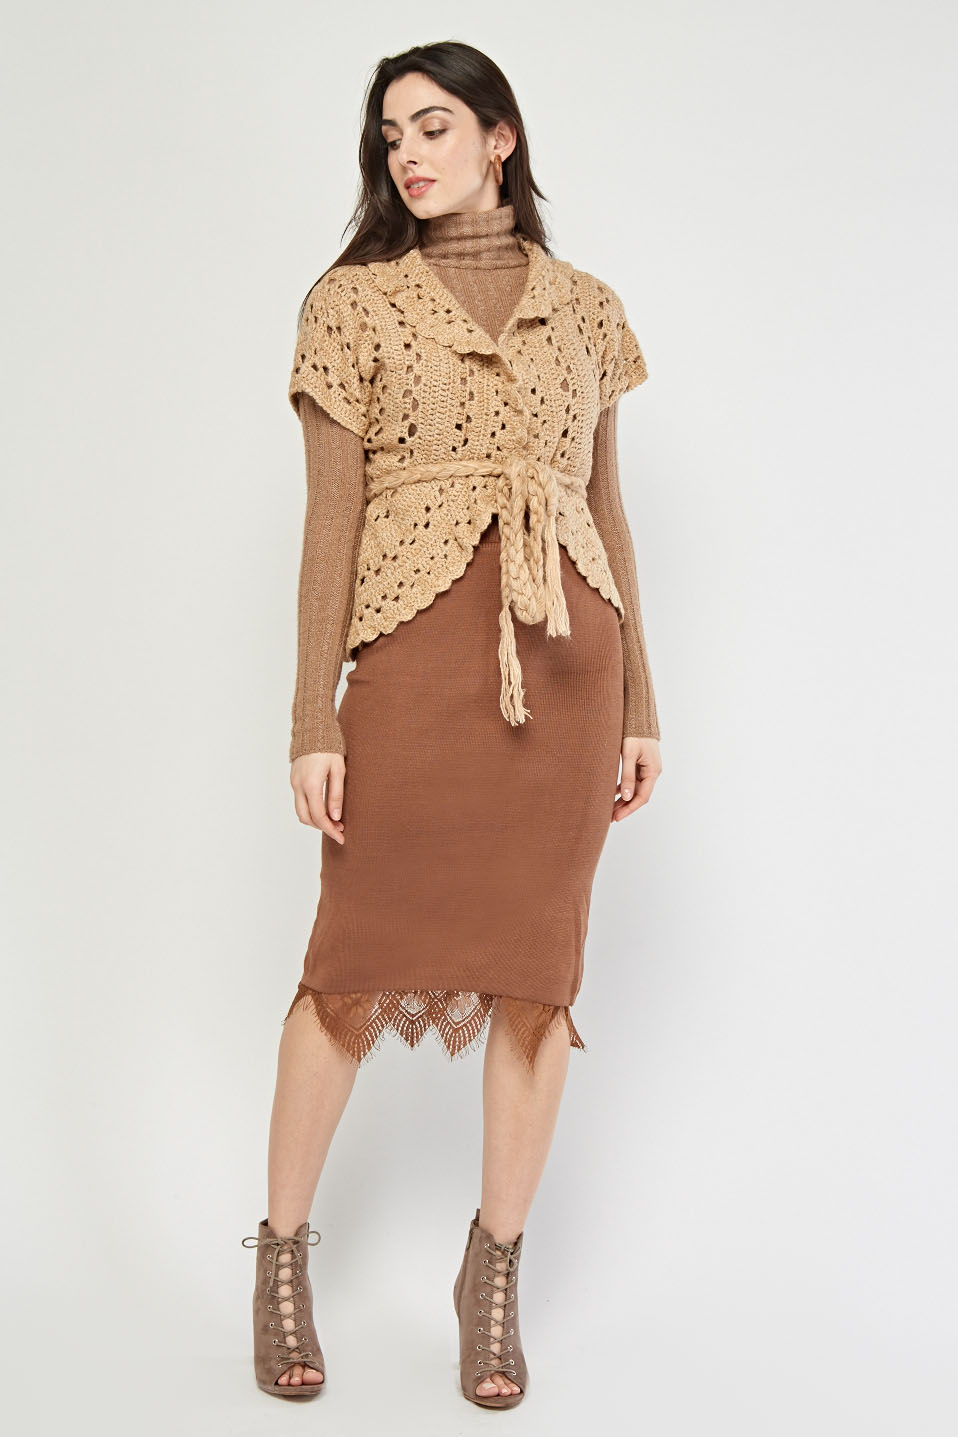 03bc741926 Loose Knit Tie Up Cardigan - Beige or Camel - Just £5